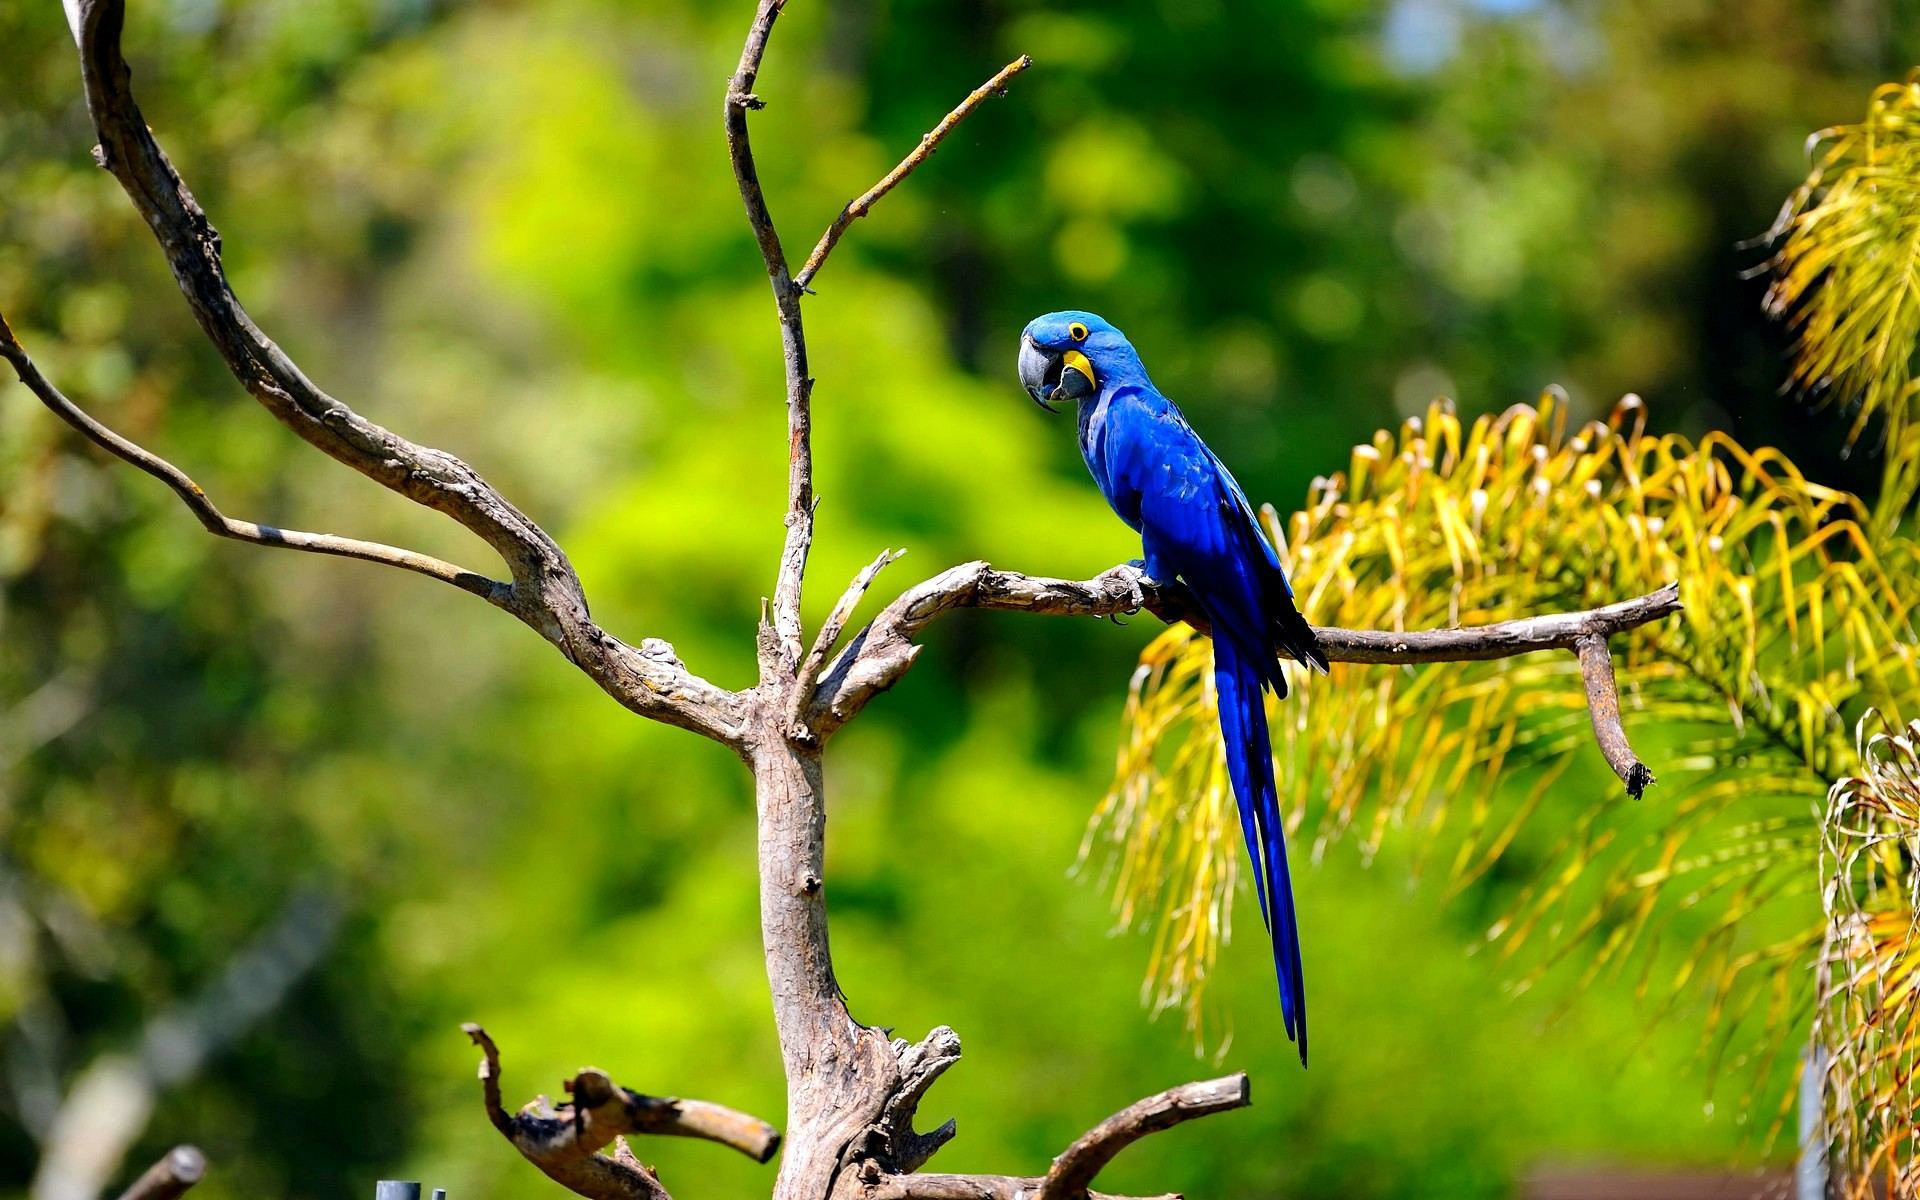 Macaw parrot wallpaper 67 images 1920x1200 most beautiful blue macaw parrot hd pictures voltagebd Images